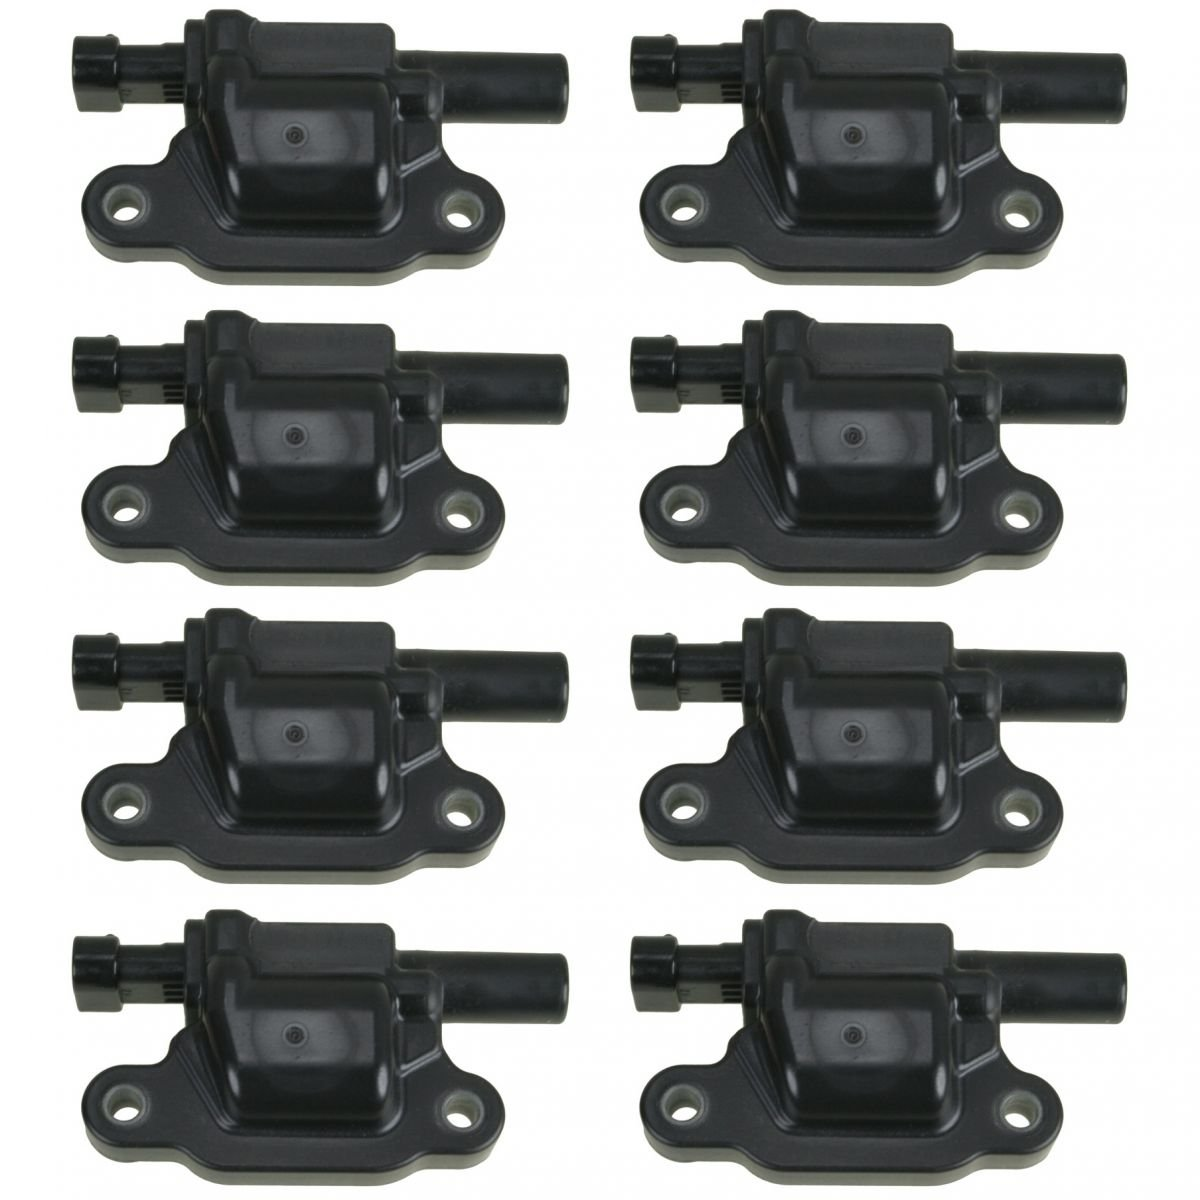 Ignition Coil Set of 8 Kit for Chevy Pontiac GMC Buick Cadillac Pickup Truck SUV TRQ